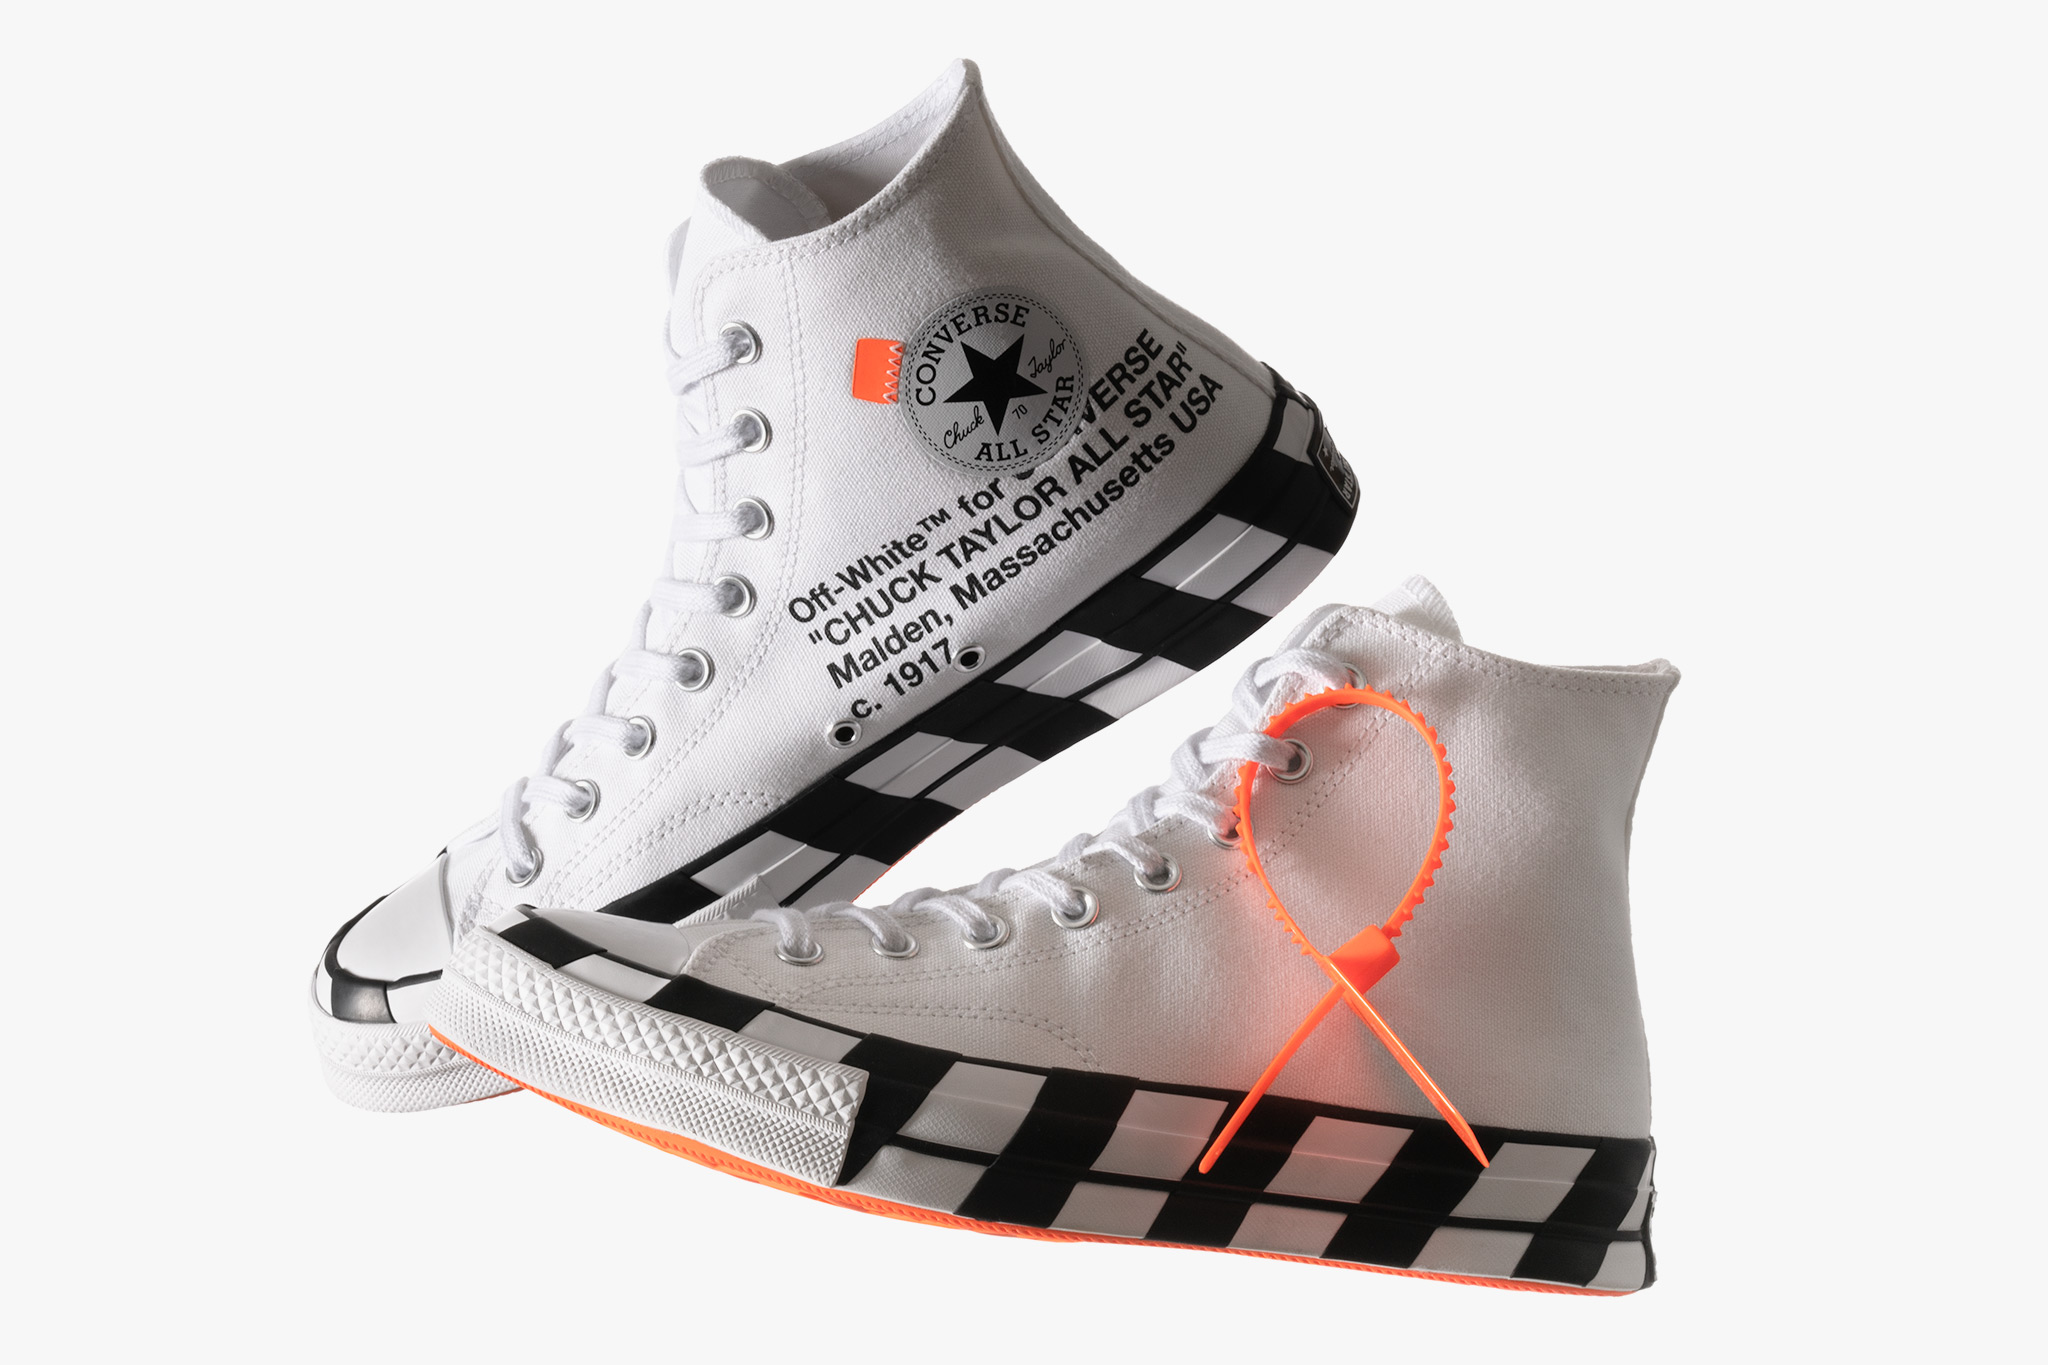 NEW OFF-WHITE x Converse Chuck 70 - Where to Buy ...